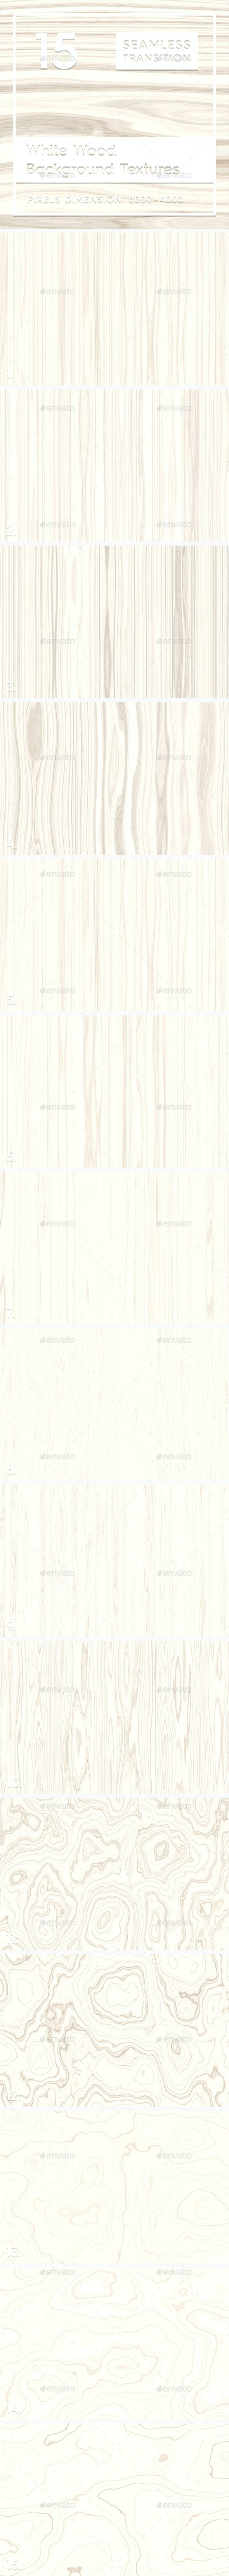 15 Wood Surface Background Textures - 3DOcean Item for Sale